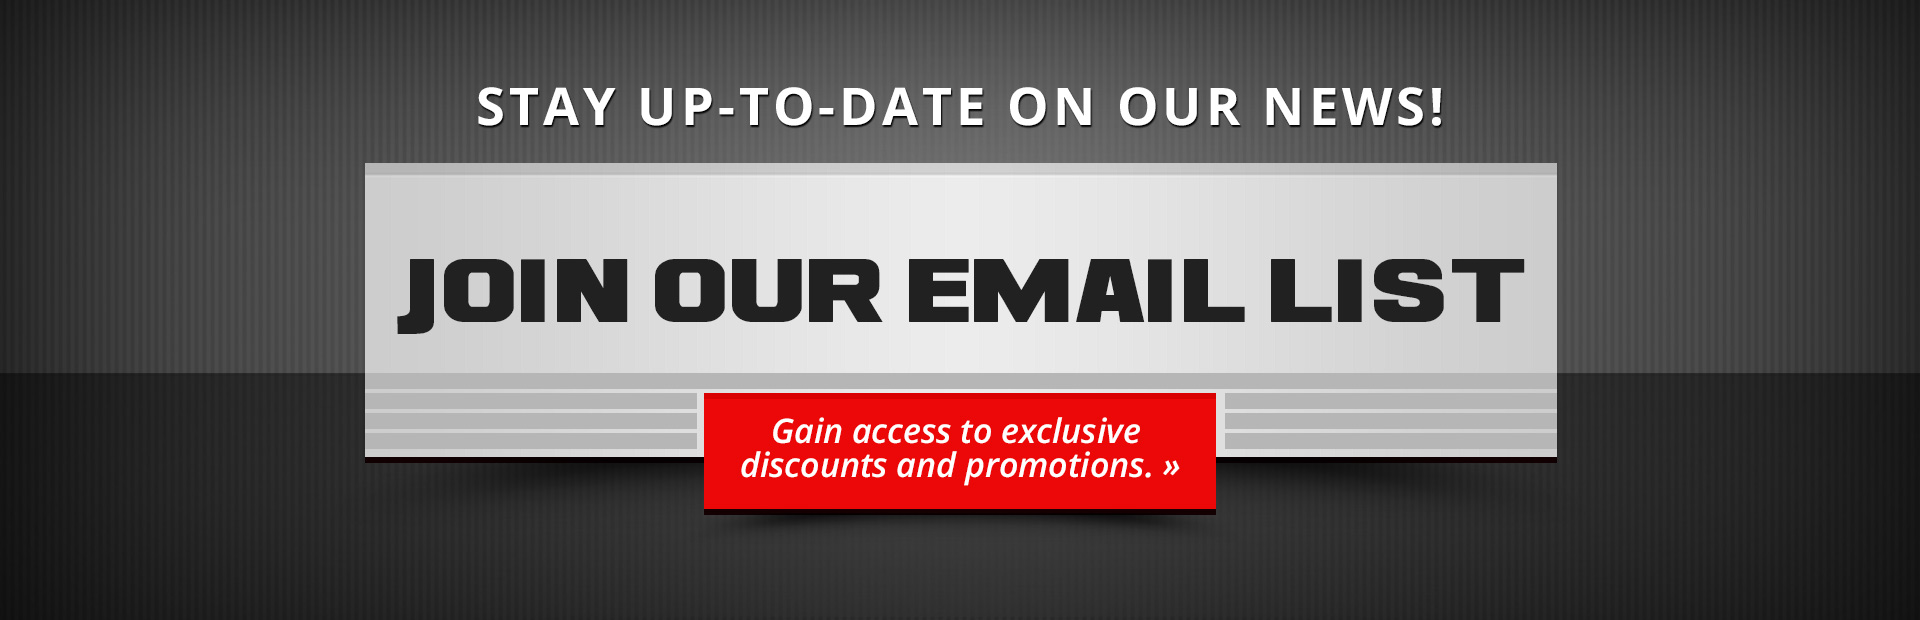 Join our email list to stay up-to-date on our news and gain access to exclusive discounts and promot